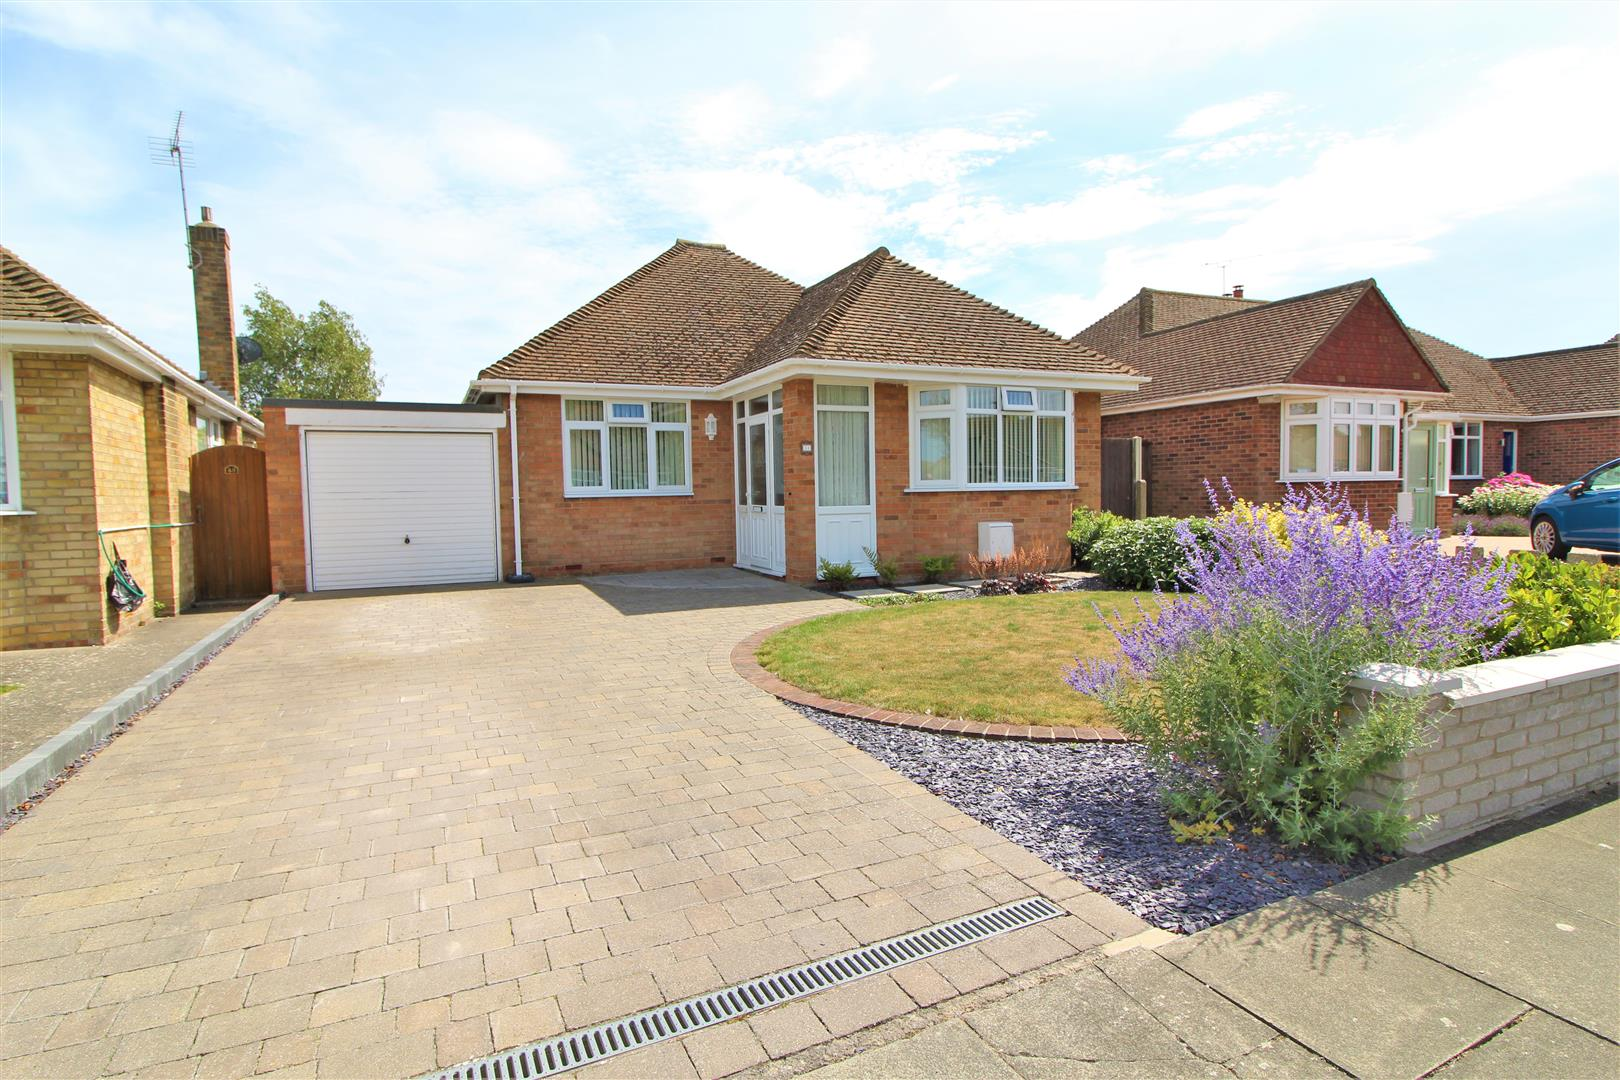 Walden Way, Frinton-On-Sea, Essex, CO13 0BH